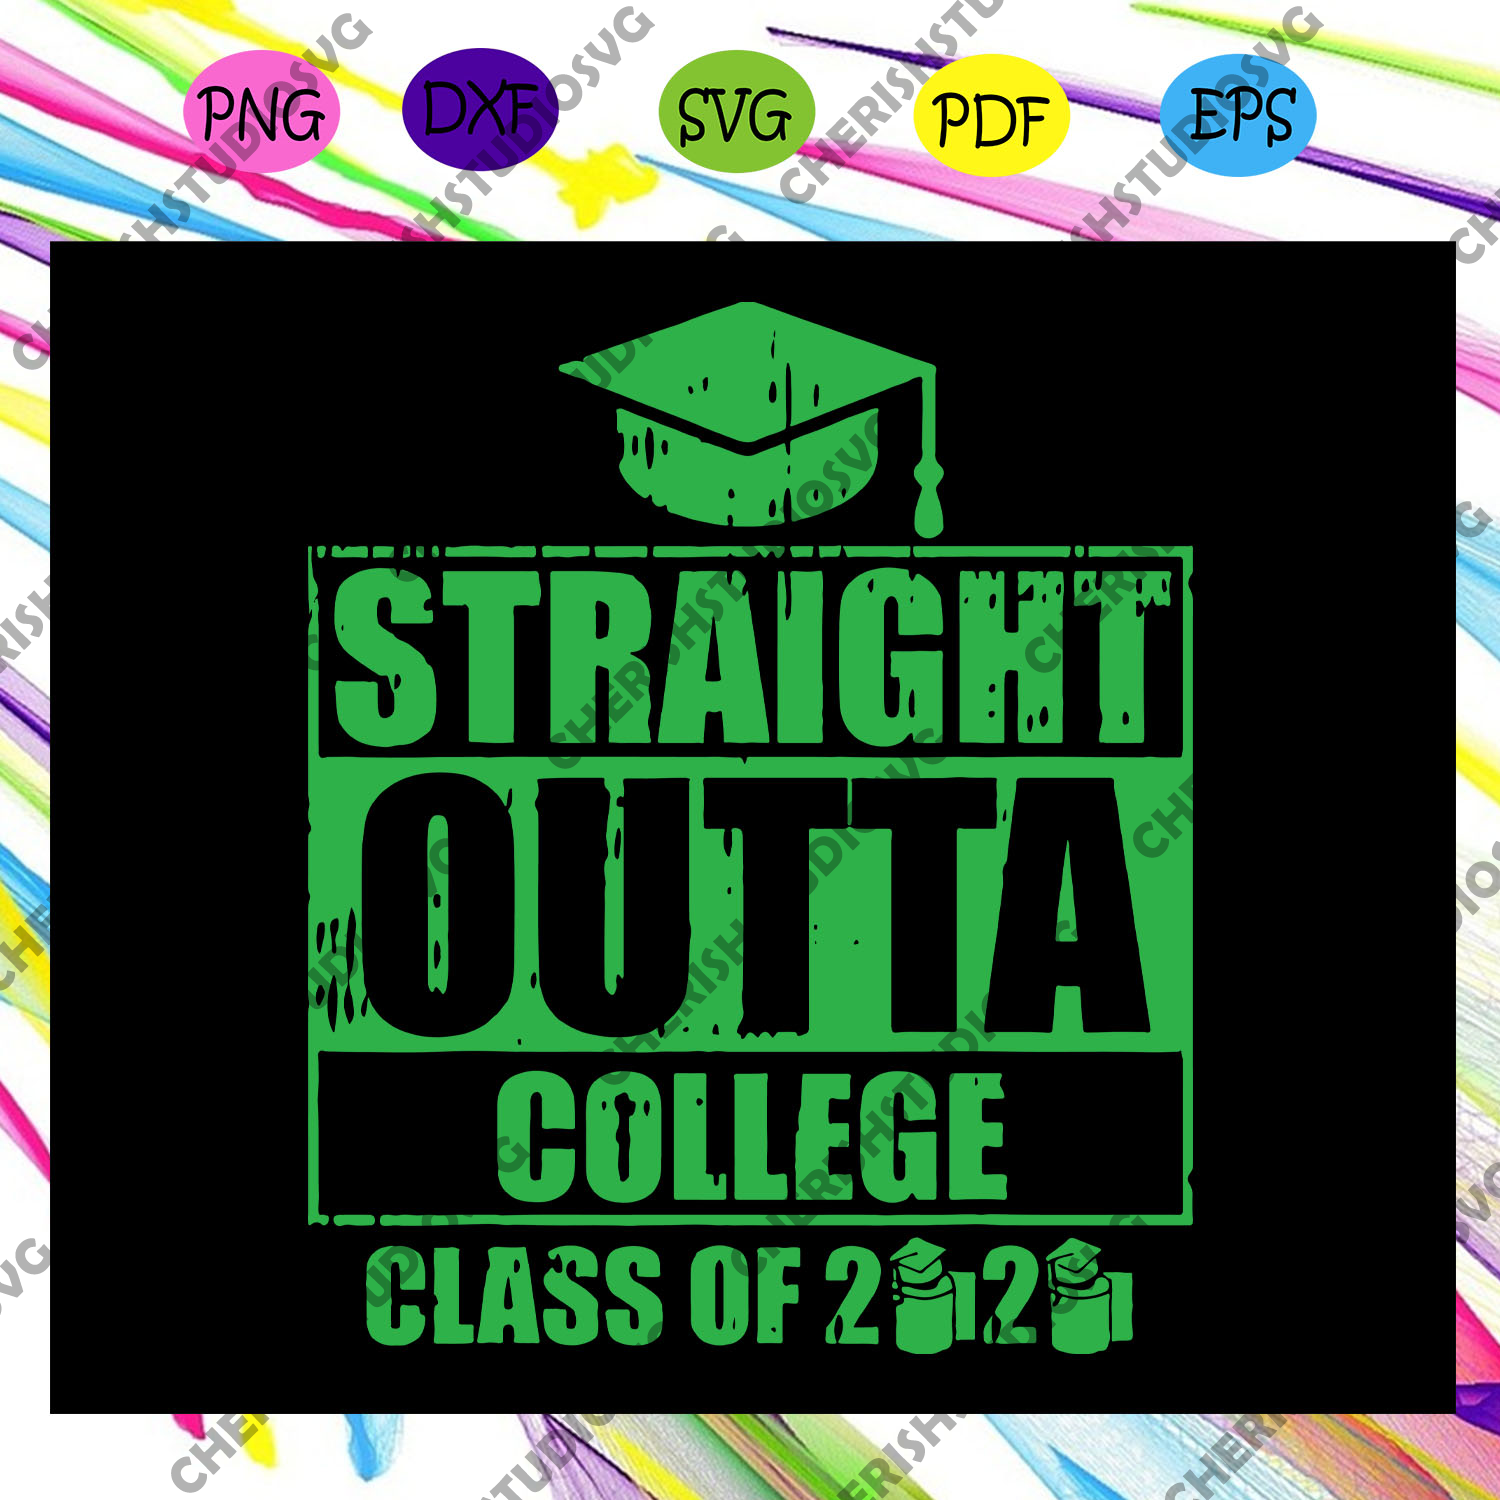 Straight outta college class of 2020,senior svg, senior gift, graduation gift, graduation svg, gift for student, funny gift, digital file, vinyl for cricut, svg cut files, svg clipart, silhouette svg, cricut svg files, decal and vinyl,